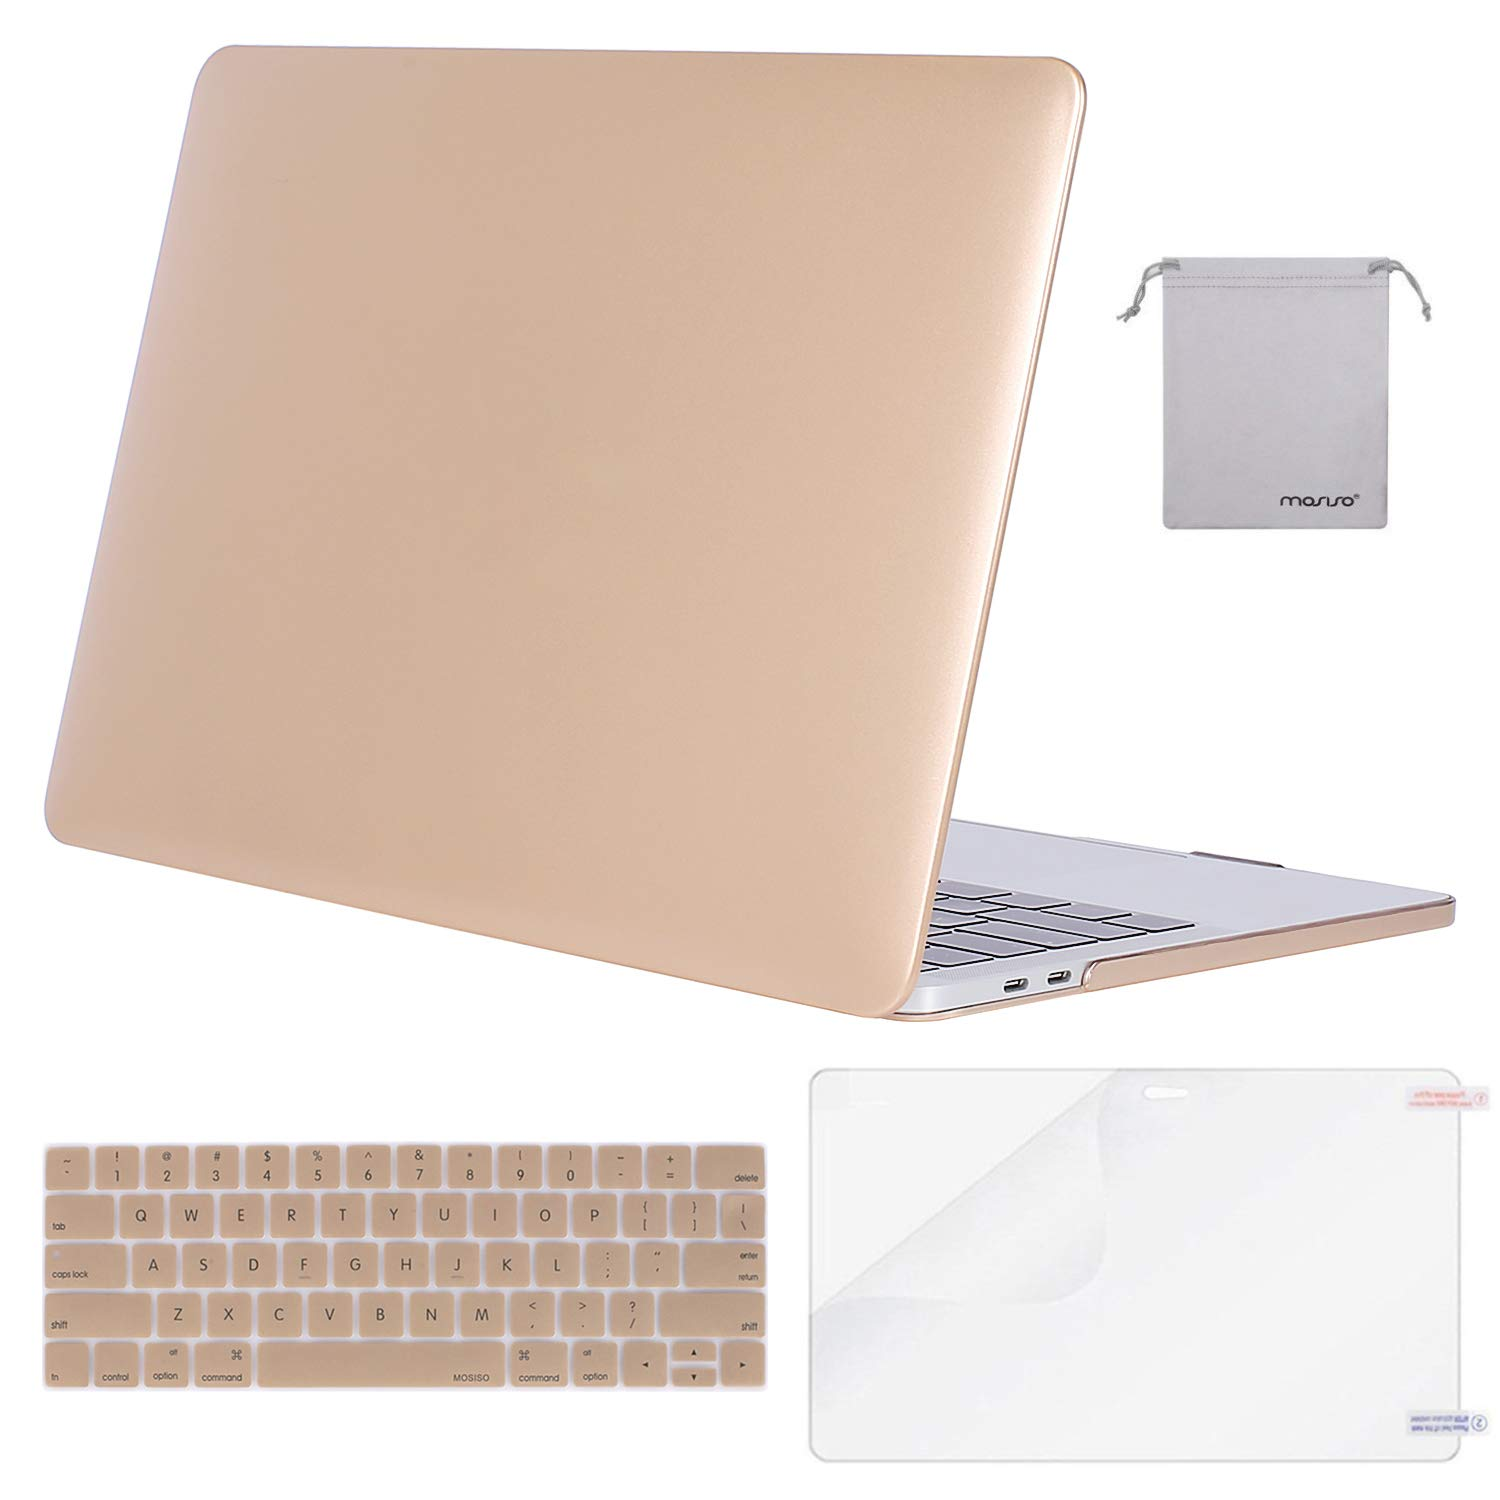 MOSISO MacBook Pro 15 inch Case 2019 2018 2017 2016 Release A1990 A1707, Plastic Hard Shell Case&Keyboard Cover&Screen Protector&Storage Bag Compatible with MacBook Pro 15 Touch Bar, Gold